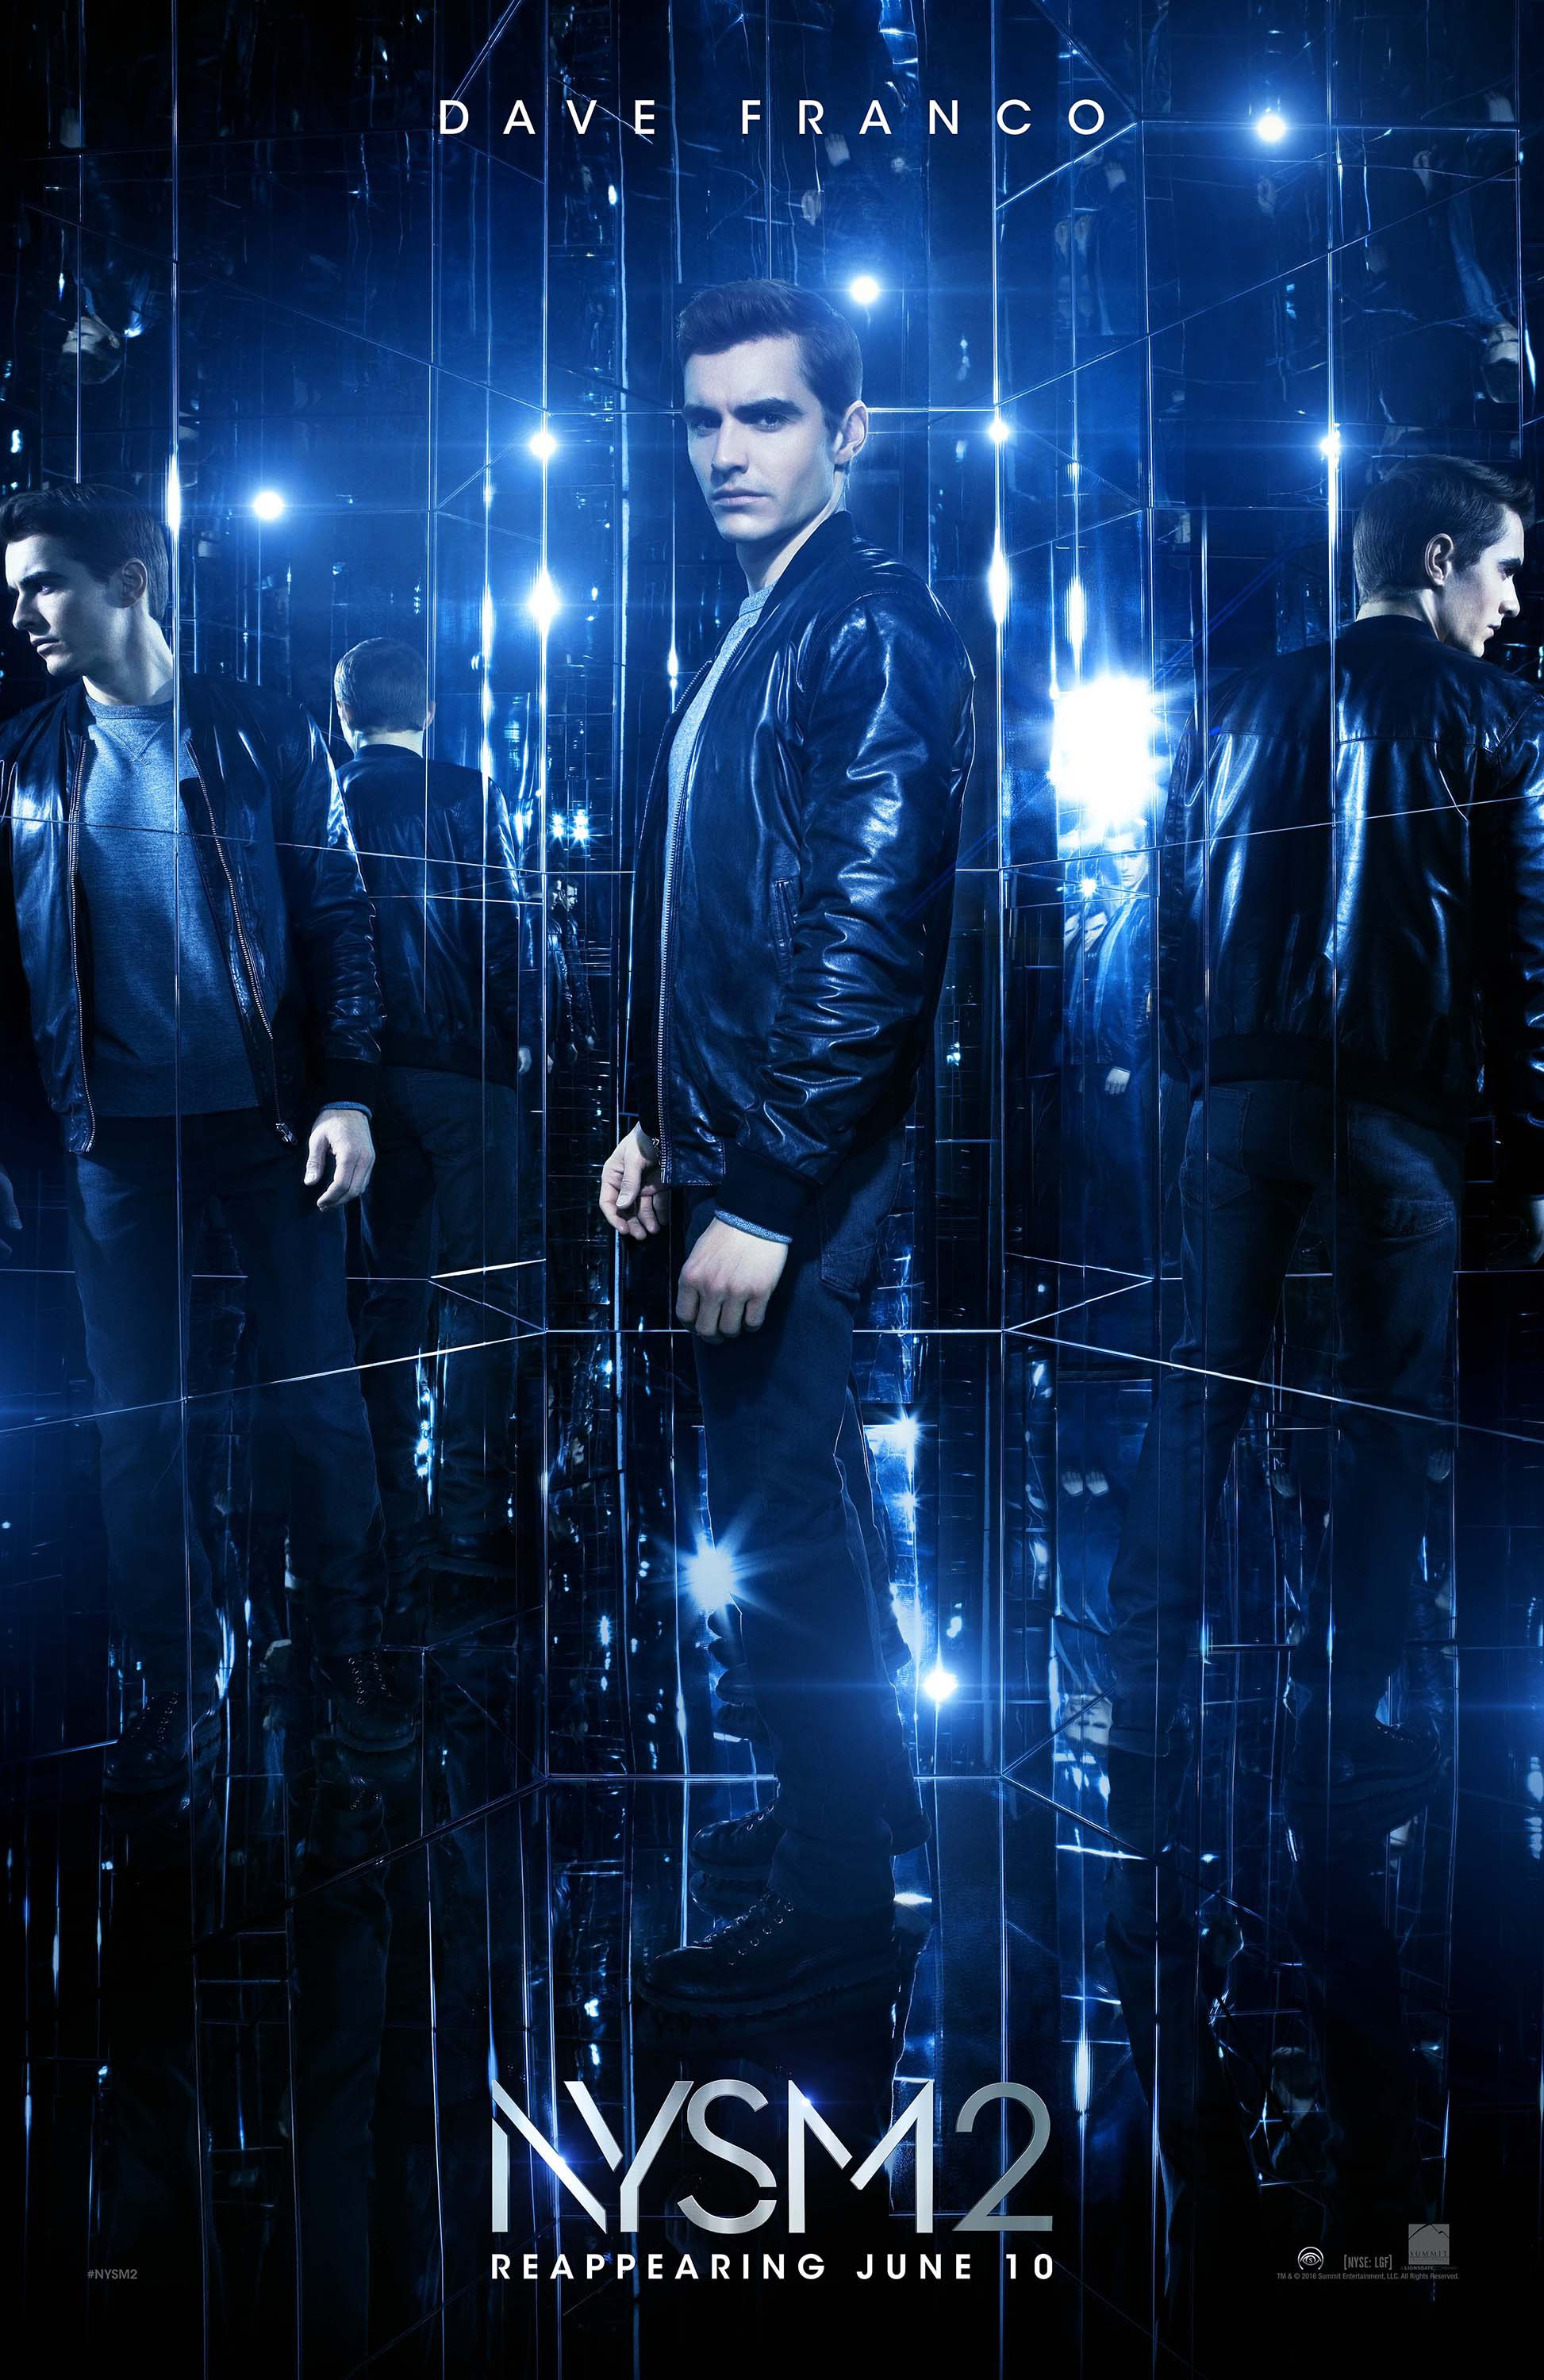 Now You See Me 2 Character Poster Apocaflix Movies